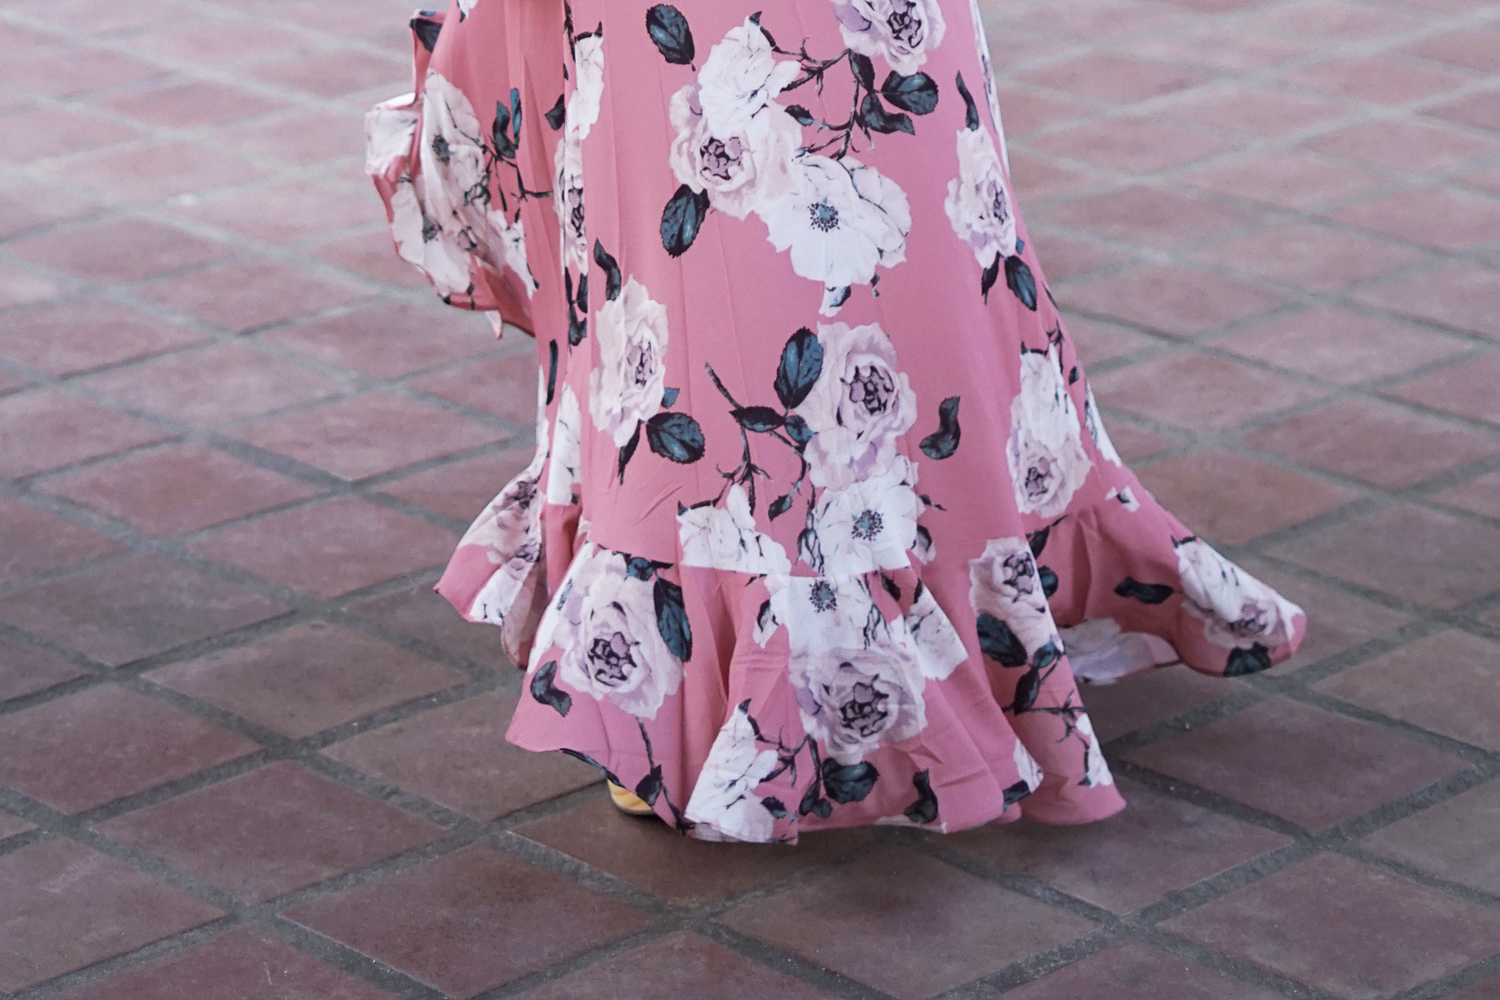 08pasadena-cityhall-floral-rose-maxi-dress-fashion-ootd